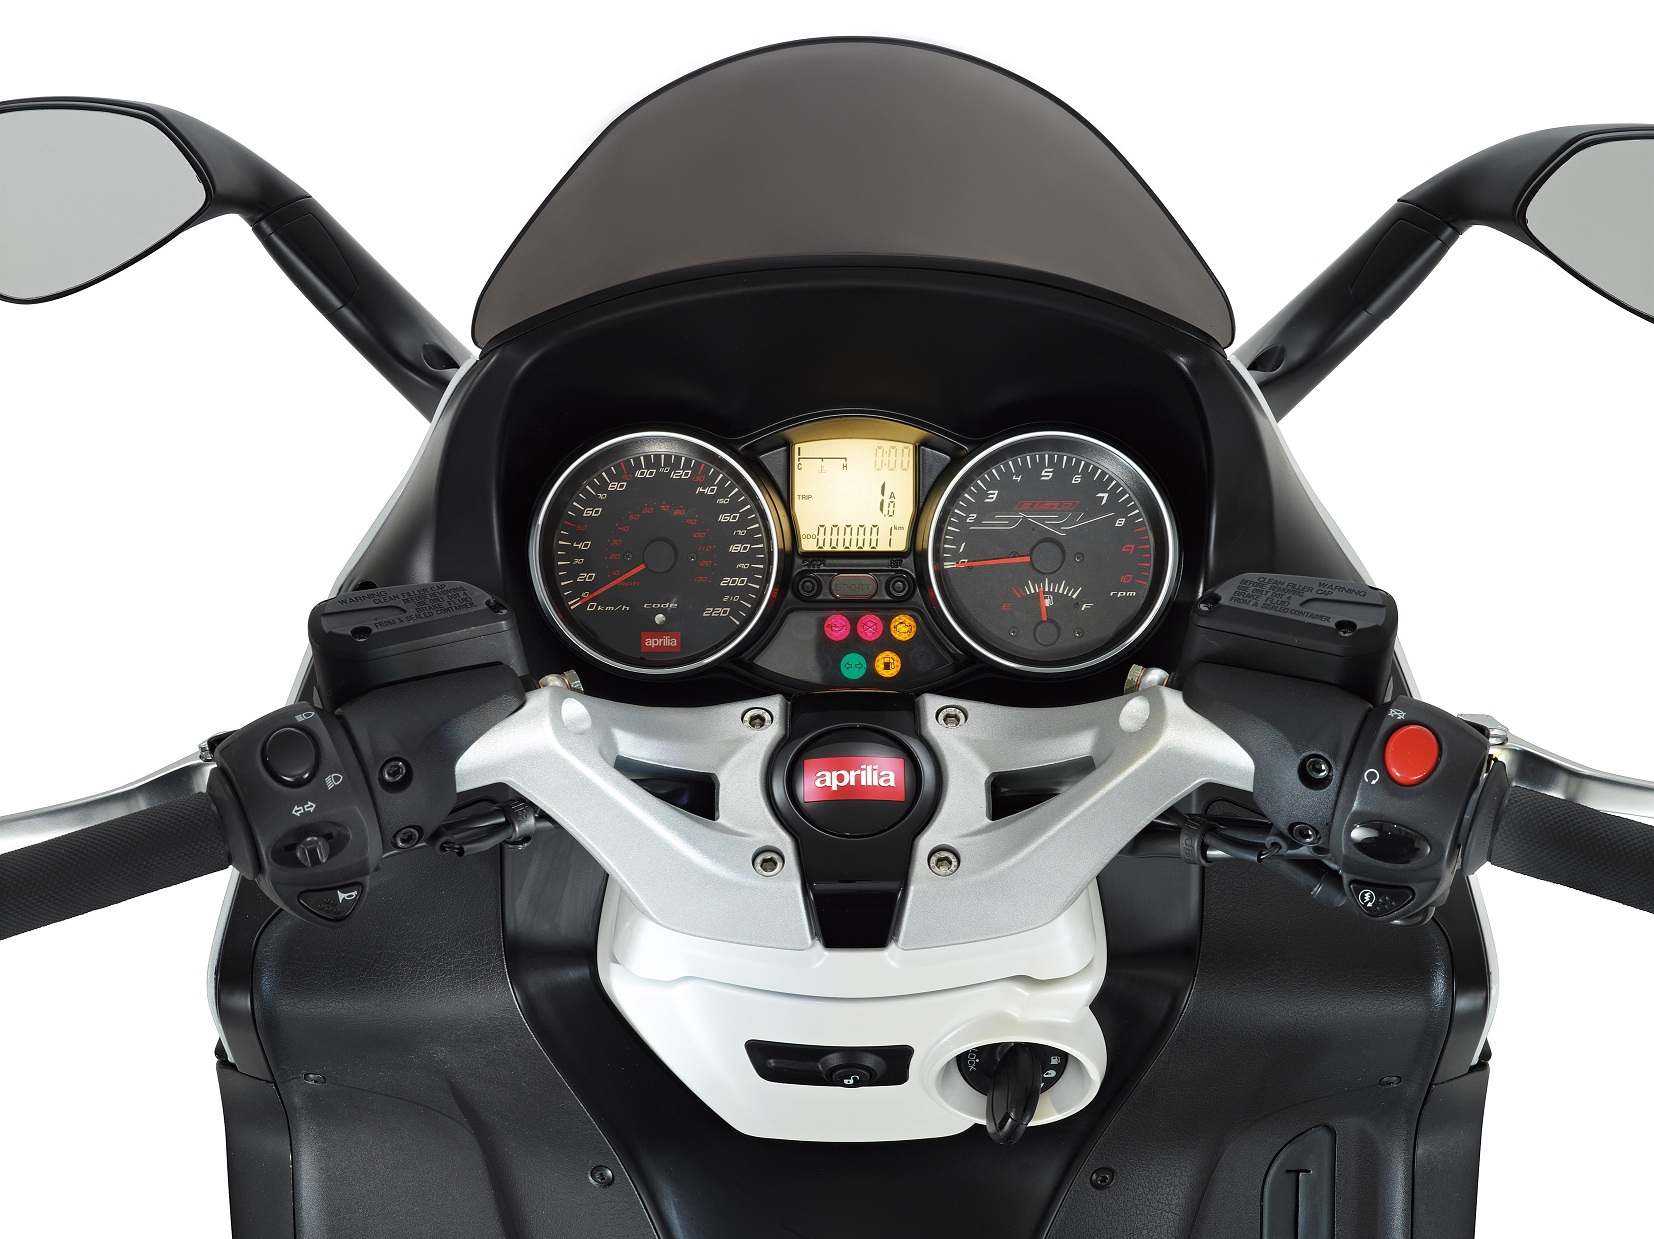 srv 850 the most powerful scooter aprilia motofavor ts. Black Bedroom Furniture Sets. Home Design Ideas